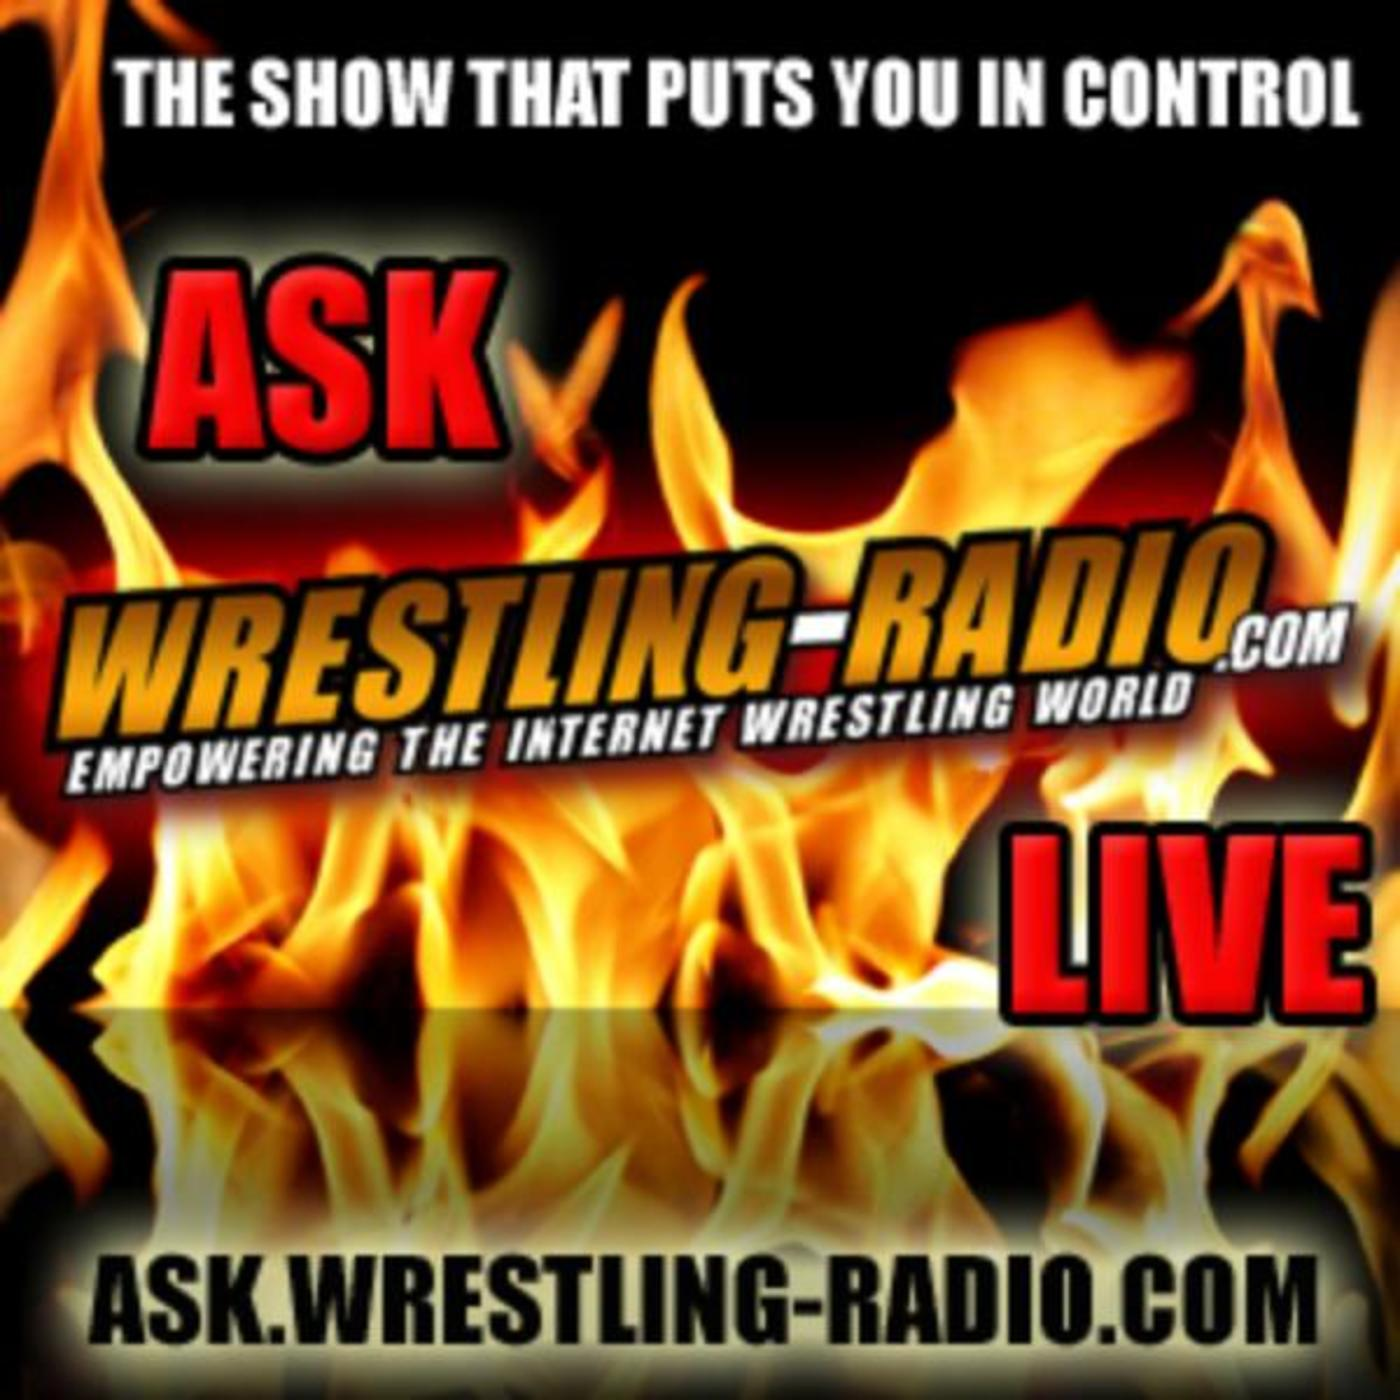 Ask Wrestling-Radio.com LIVE